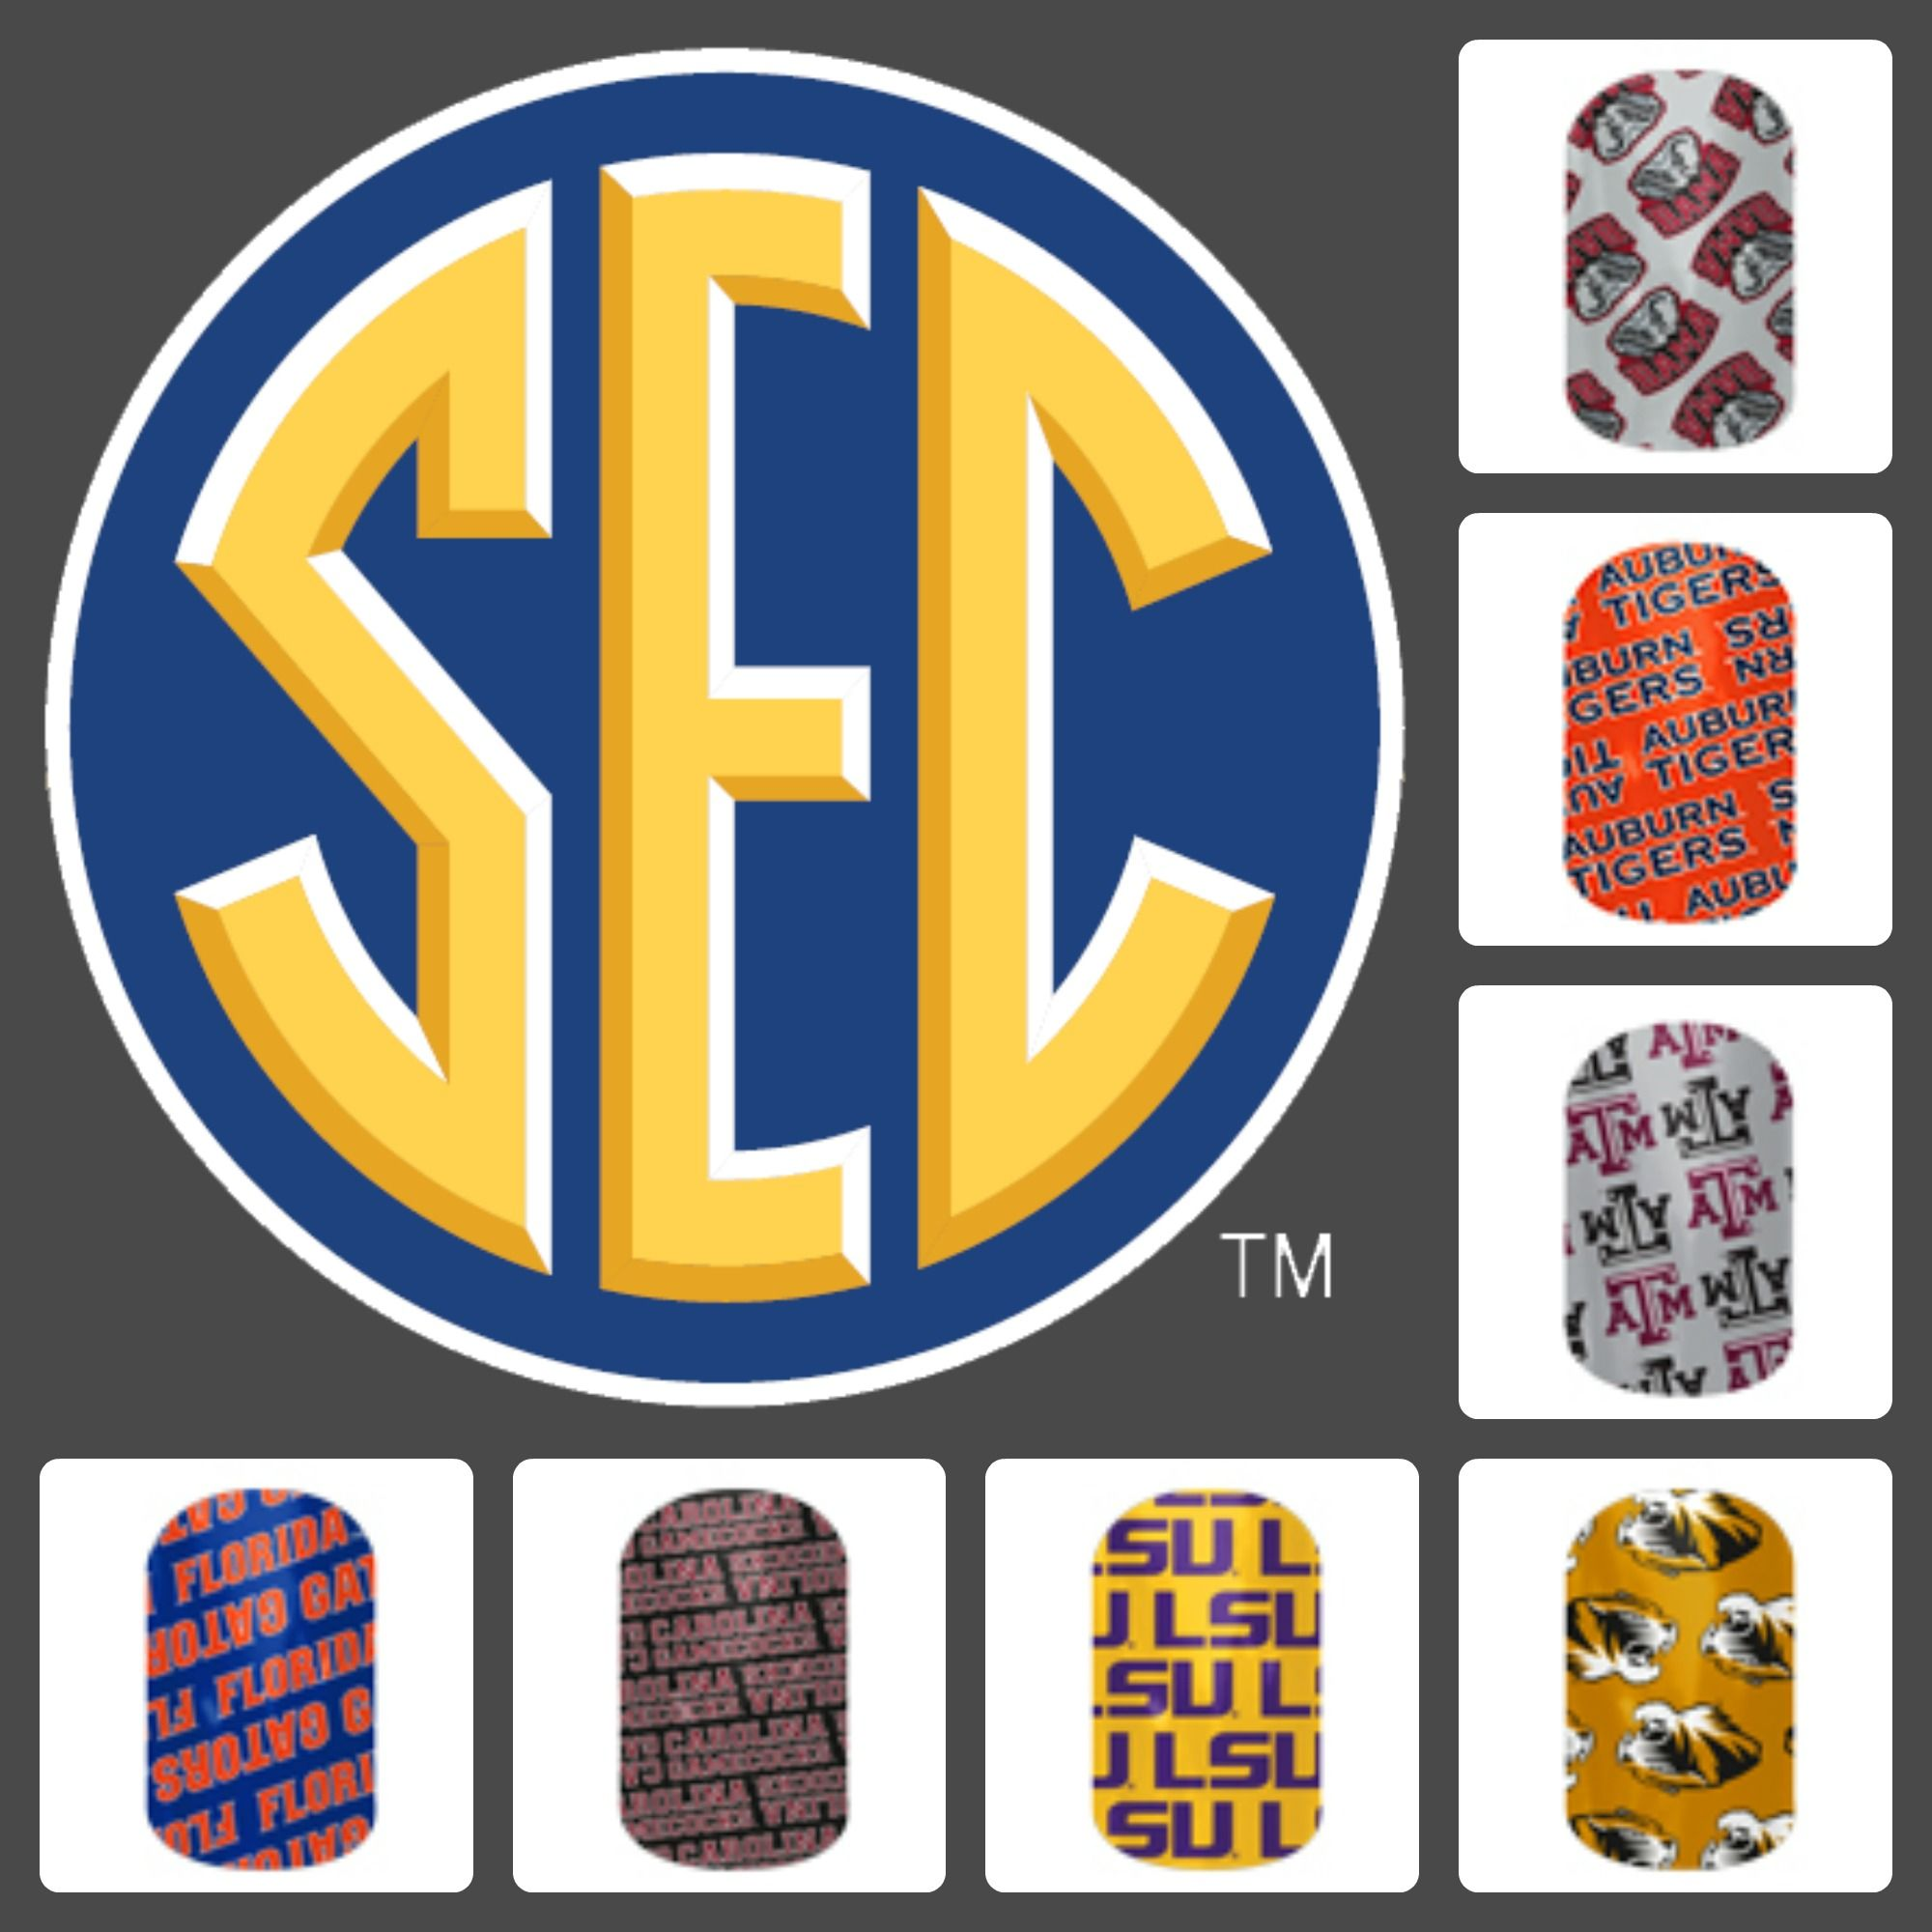 Are you ready for some SEC Football? These are the officially licensed SEC football team nail wraps from Jamberry. Show your team spirit this fall! Shelly Miller, Jamberry Independent Consultant besthandsdown.jamberrynails.net